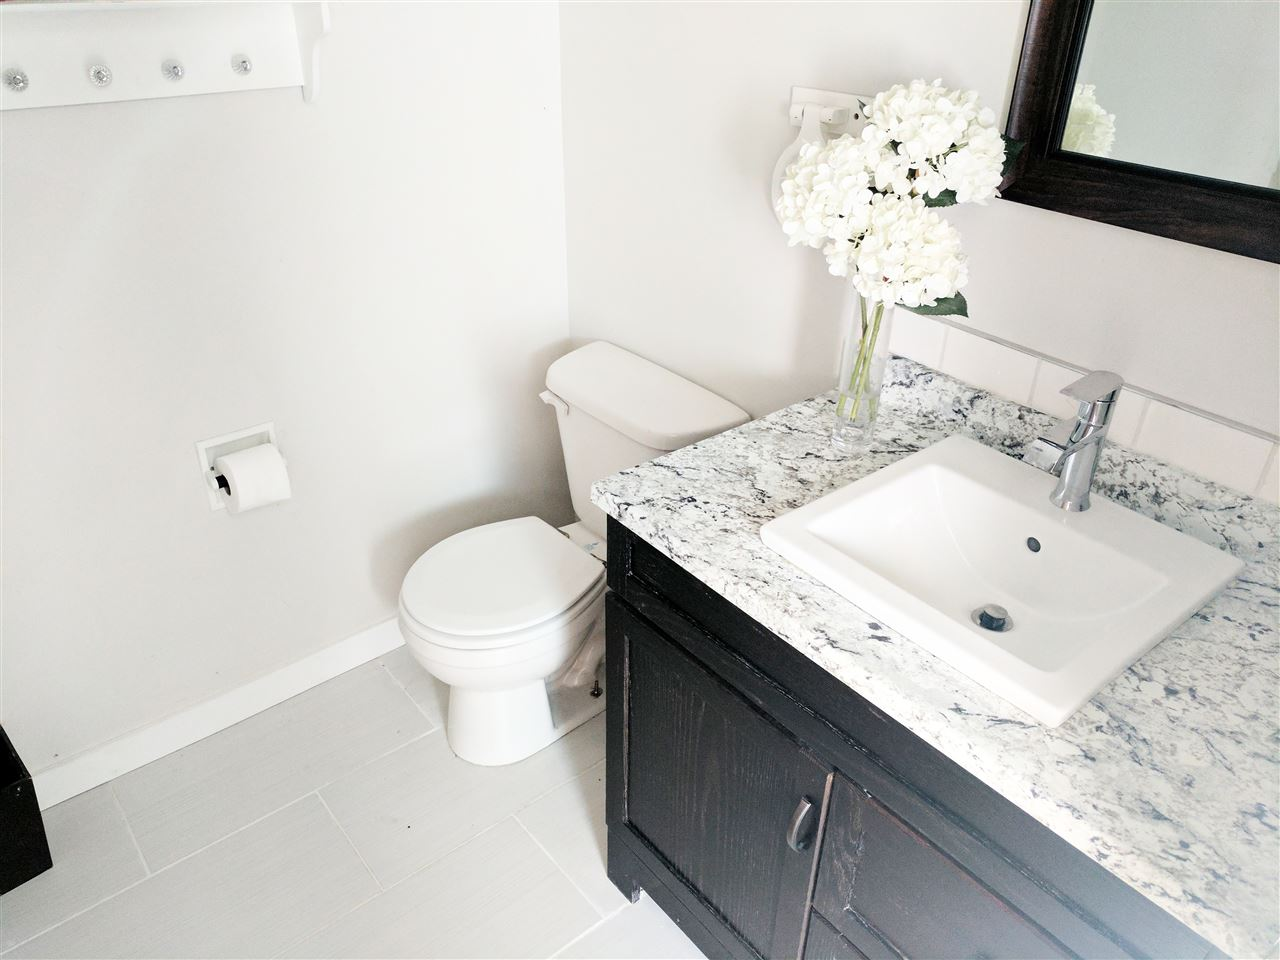 The master bath vanity, fixtures and flooring is all new!